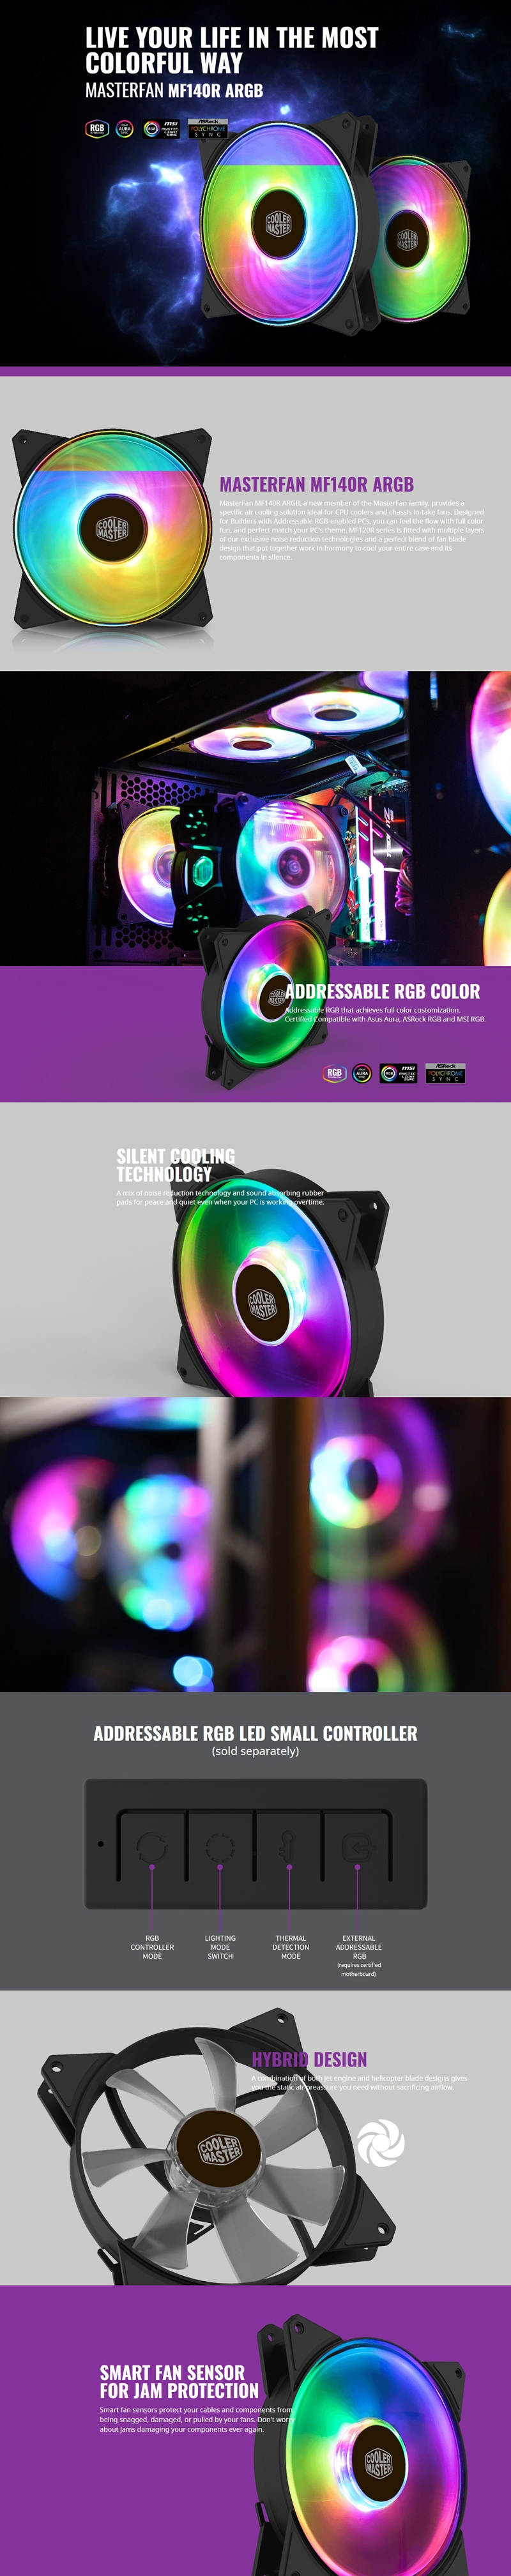 Coolermaster Masterfan 140mm Addressable Rgb Fan Support Cm Plus Software  Control R4-140r-15pc-r1